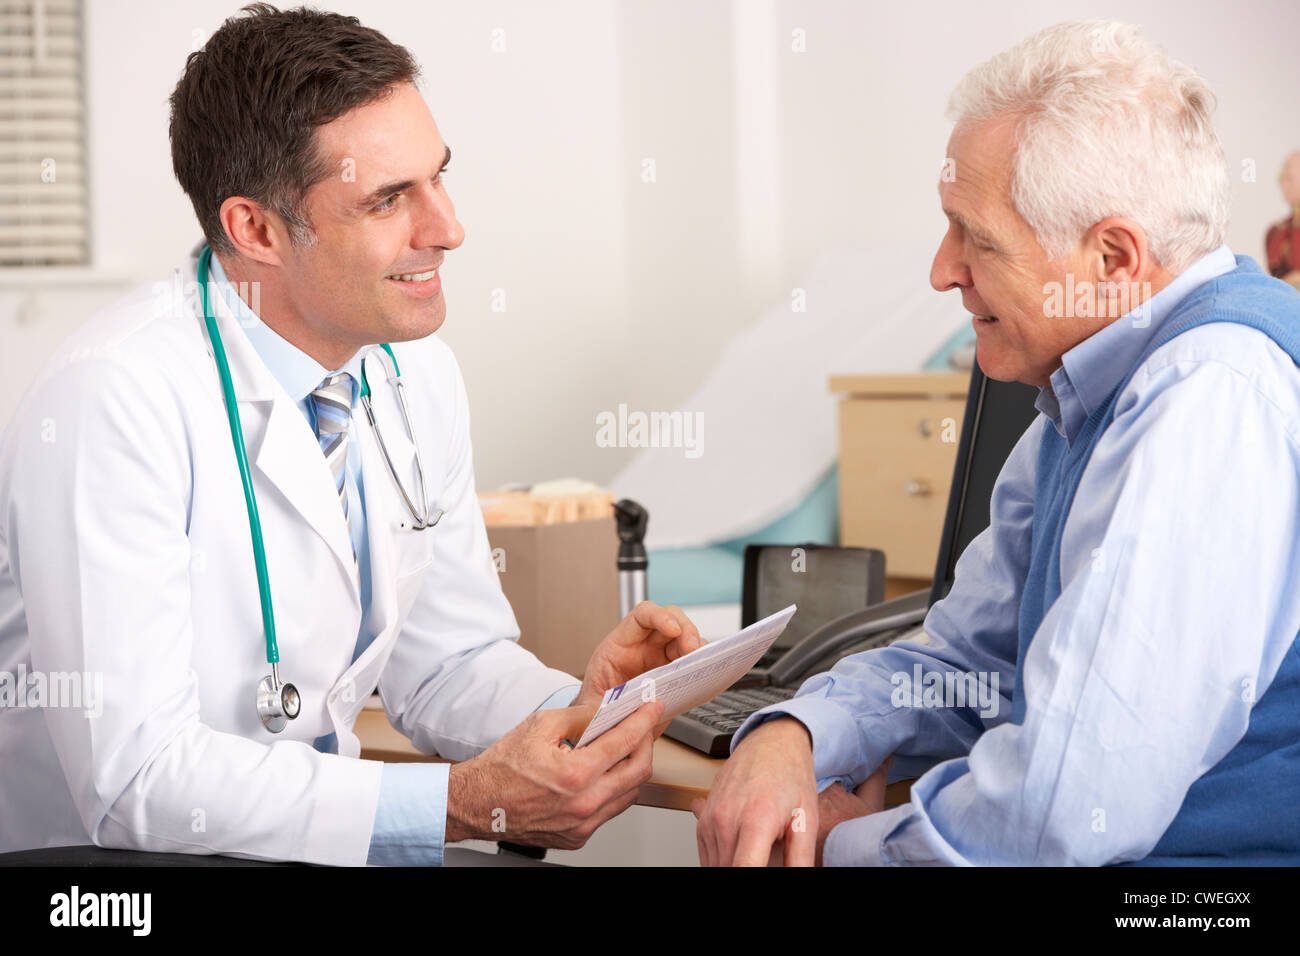 American doctor talking to senior man in surgery - Stock Image